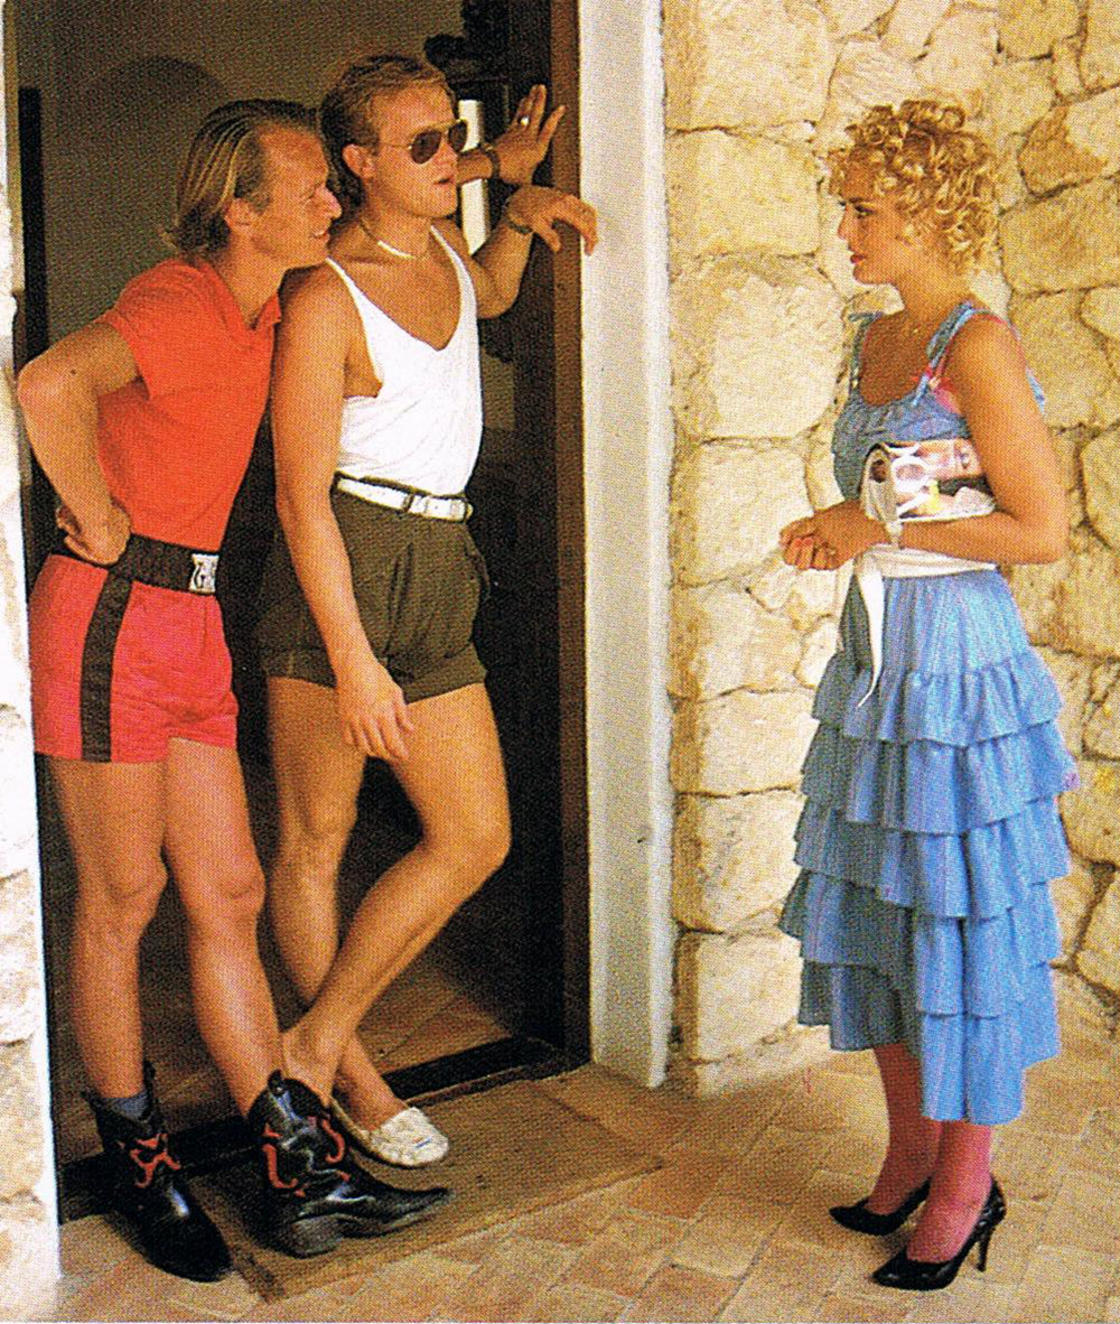 porn-fashion-1980s.jpg